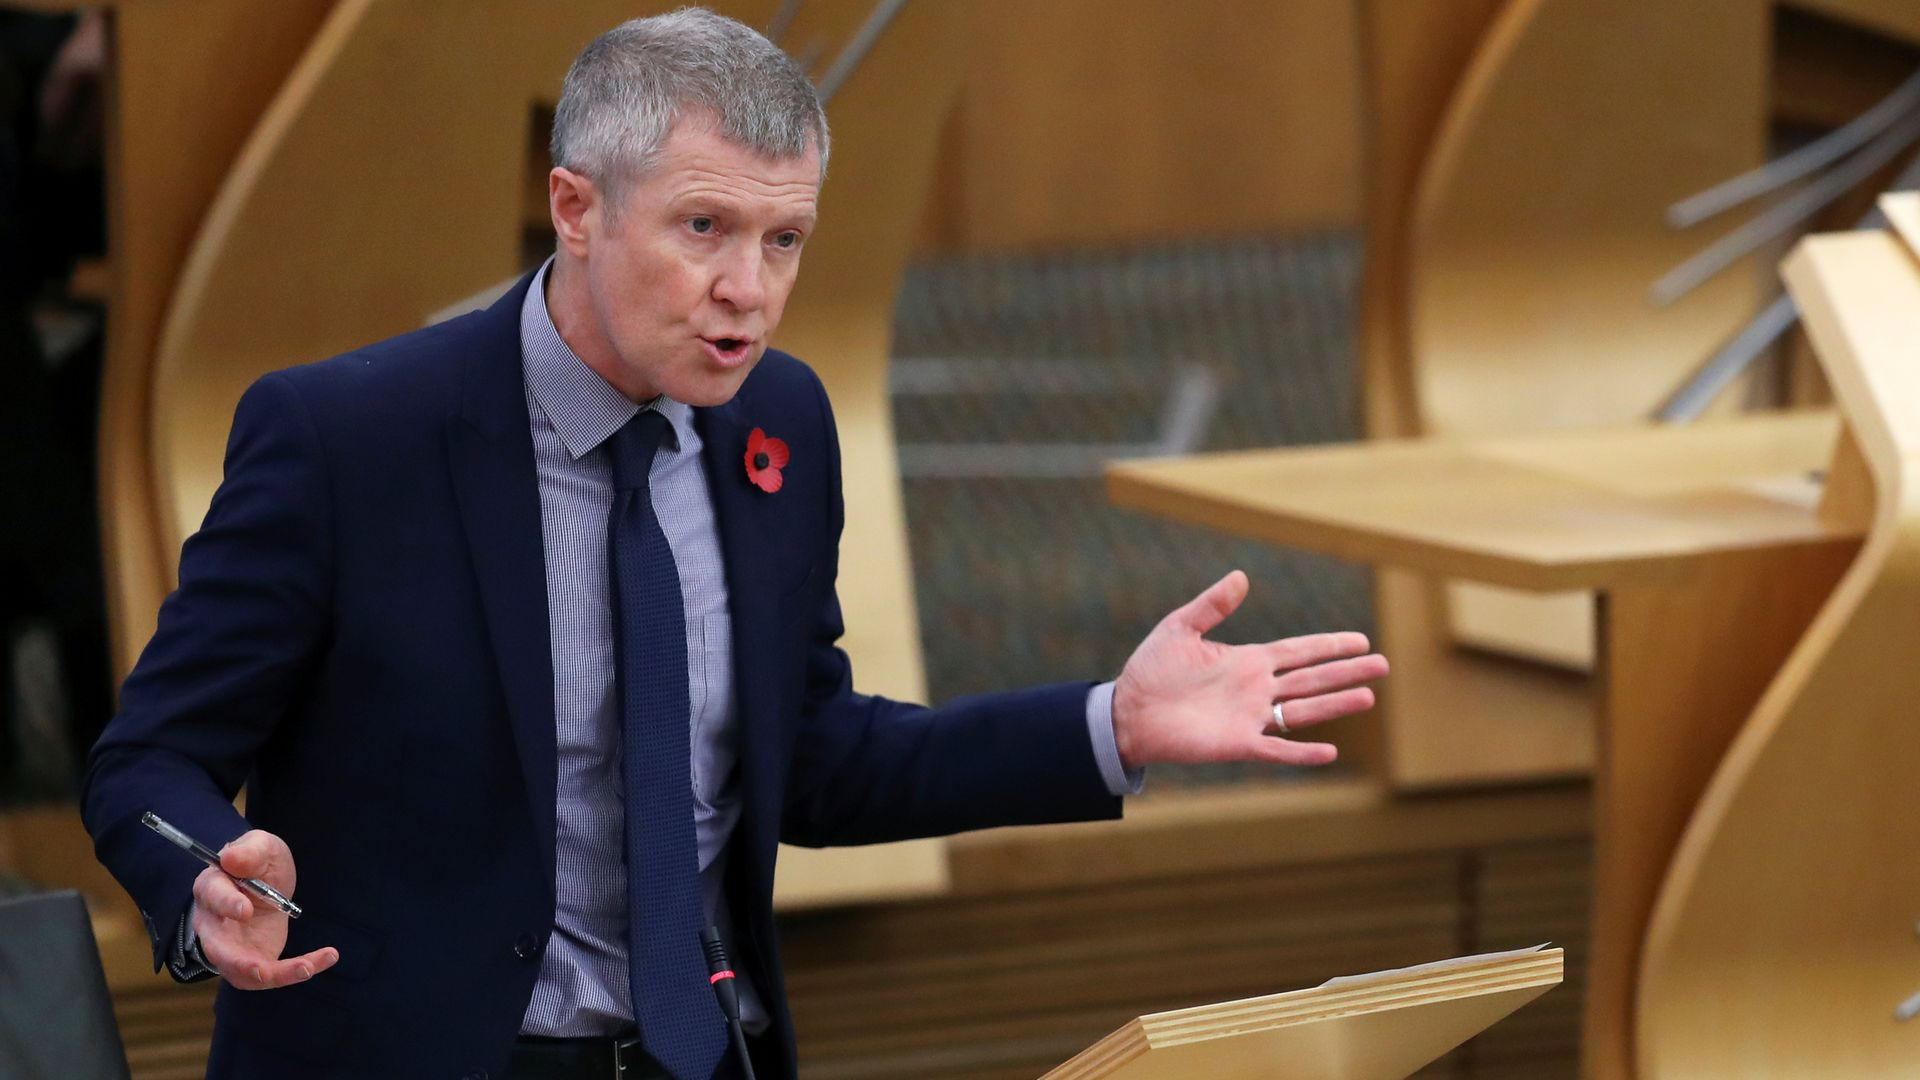 Scottish Liberal Democrats leader Willie Rennie attends First Minister's Questions at the Scottish parliament in Edinburgh - Credit: PA